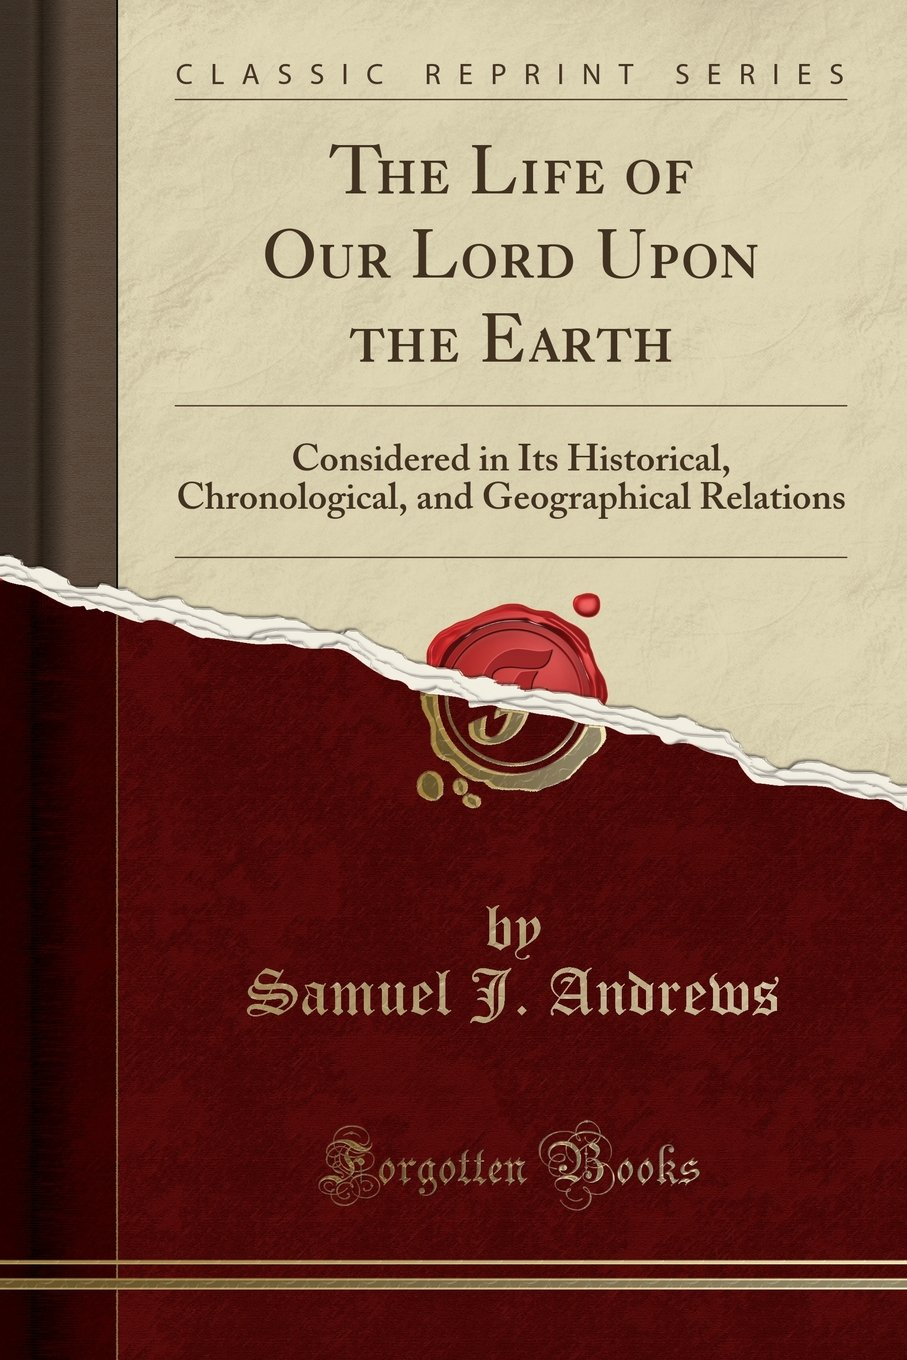 The Life of Our Lord Upon the Earth: Considered in Its Historical, Chronological, and Geographical Relations (Classic Reprint) PDF ePub ebook